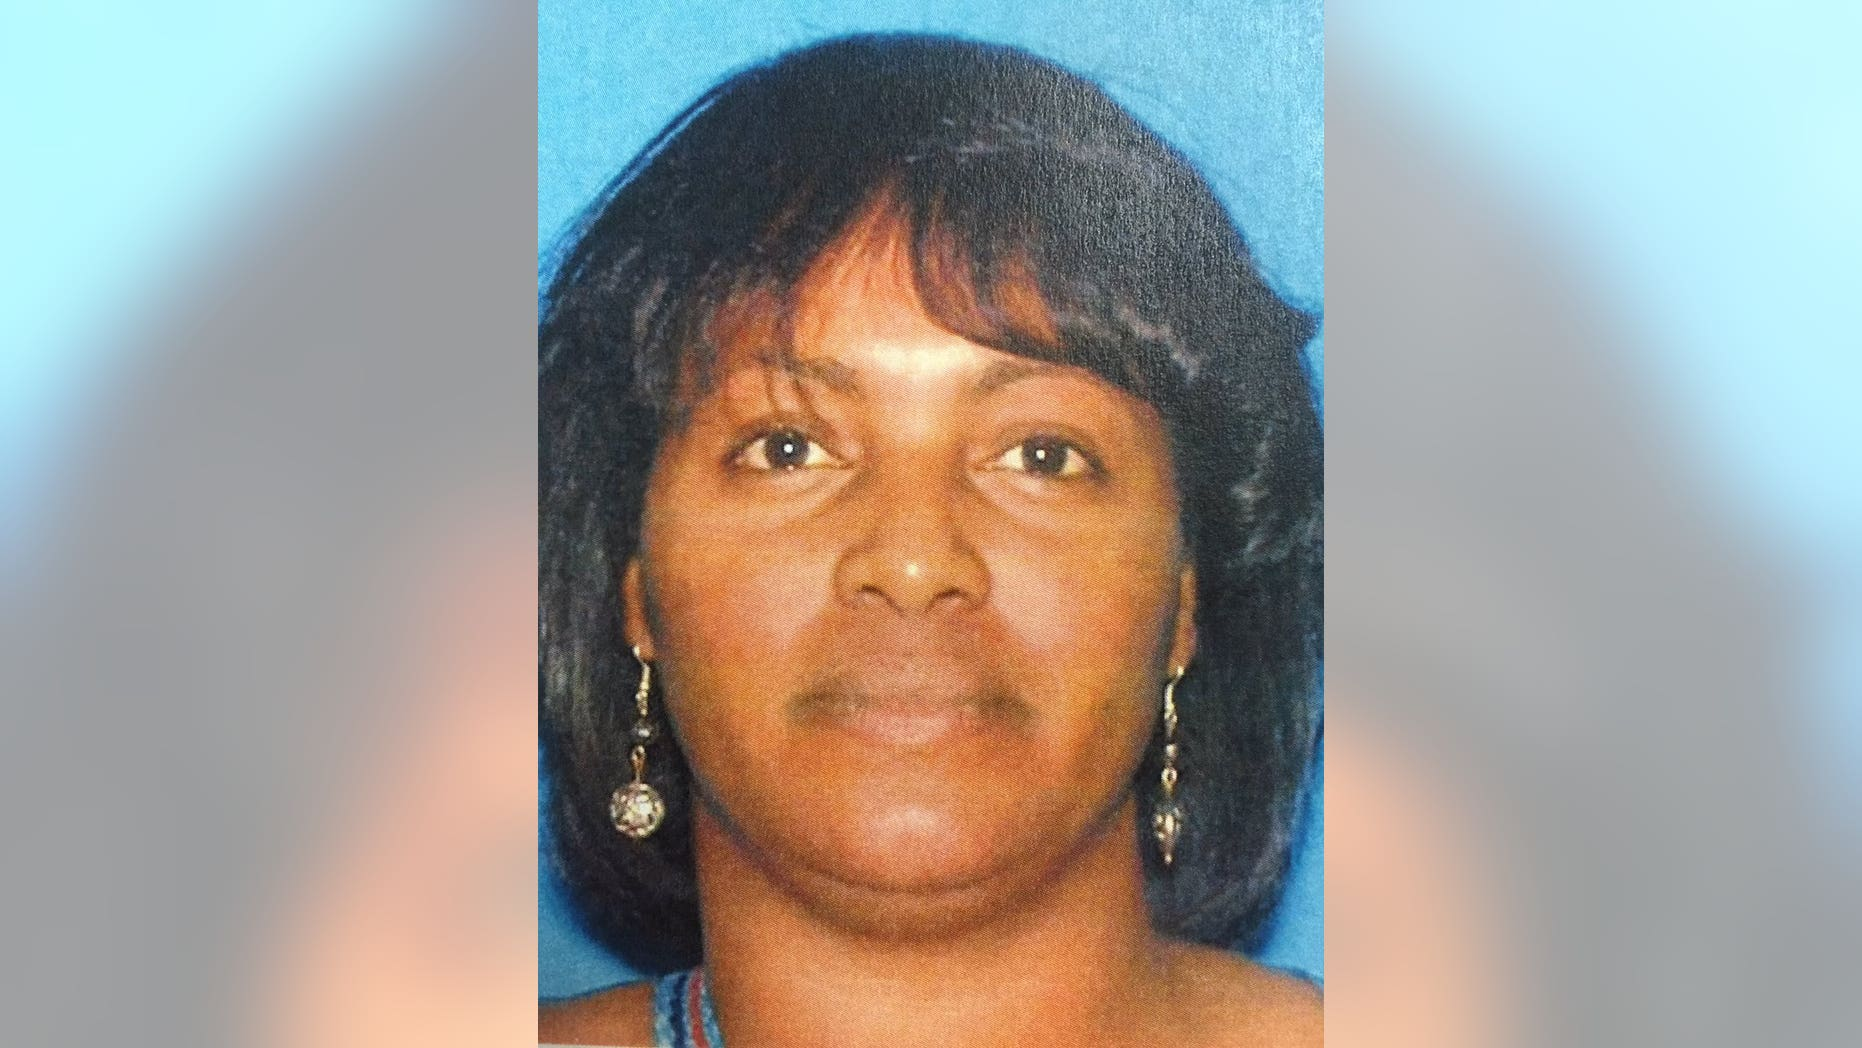 Nicole Darrington-Clark was wanted in connection with the stabbings of three relatives, including a 1-year-old granddaughter killed.